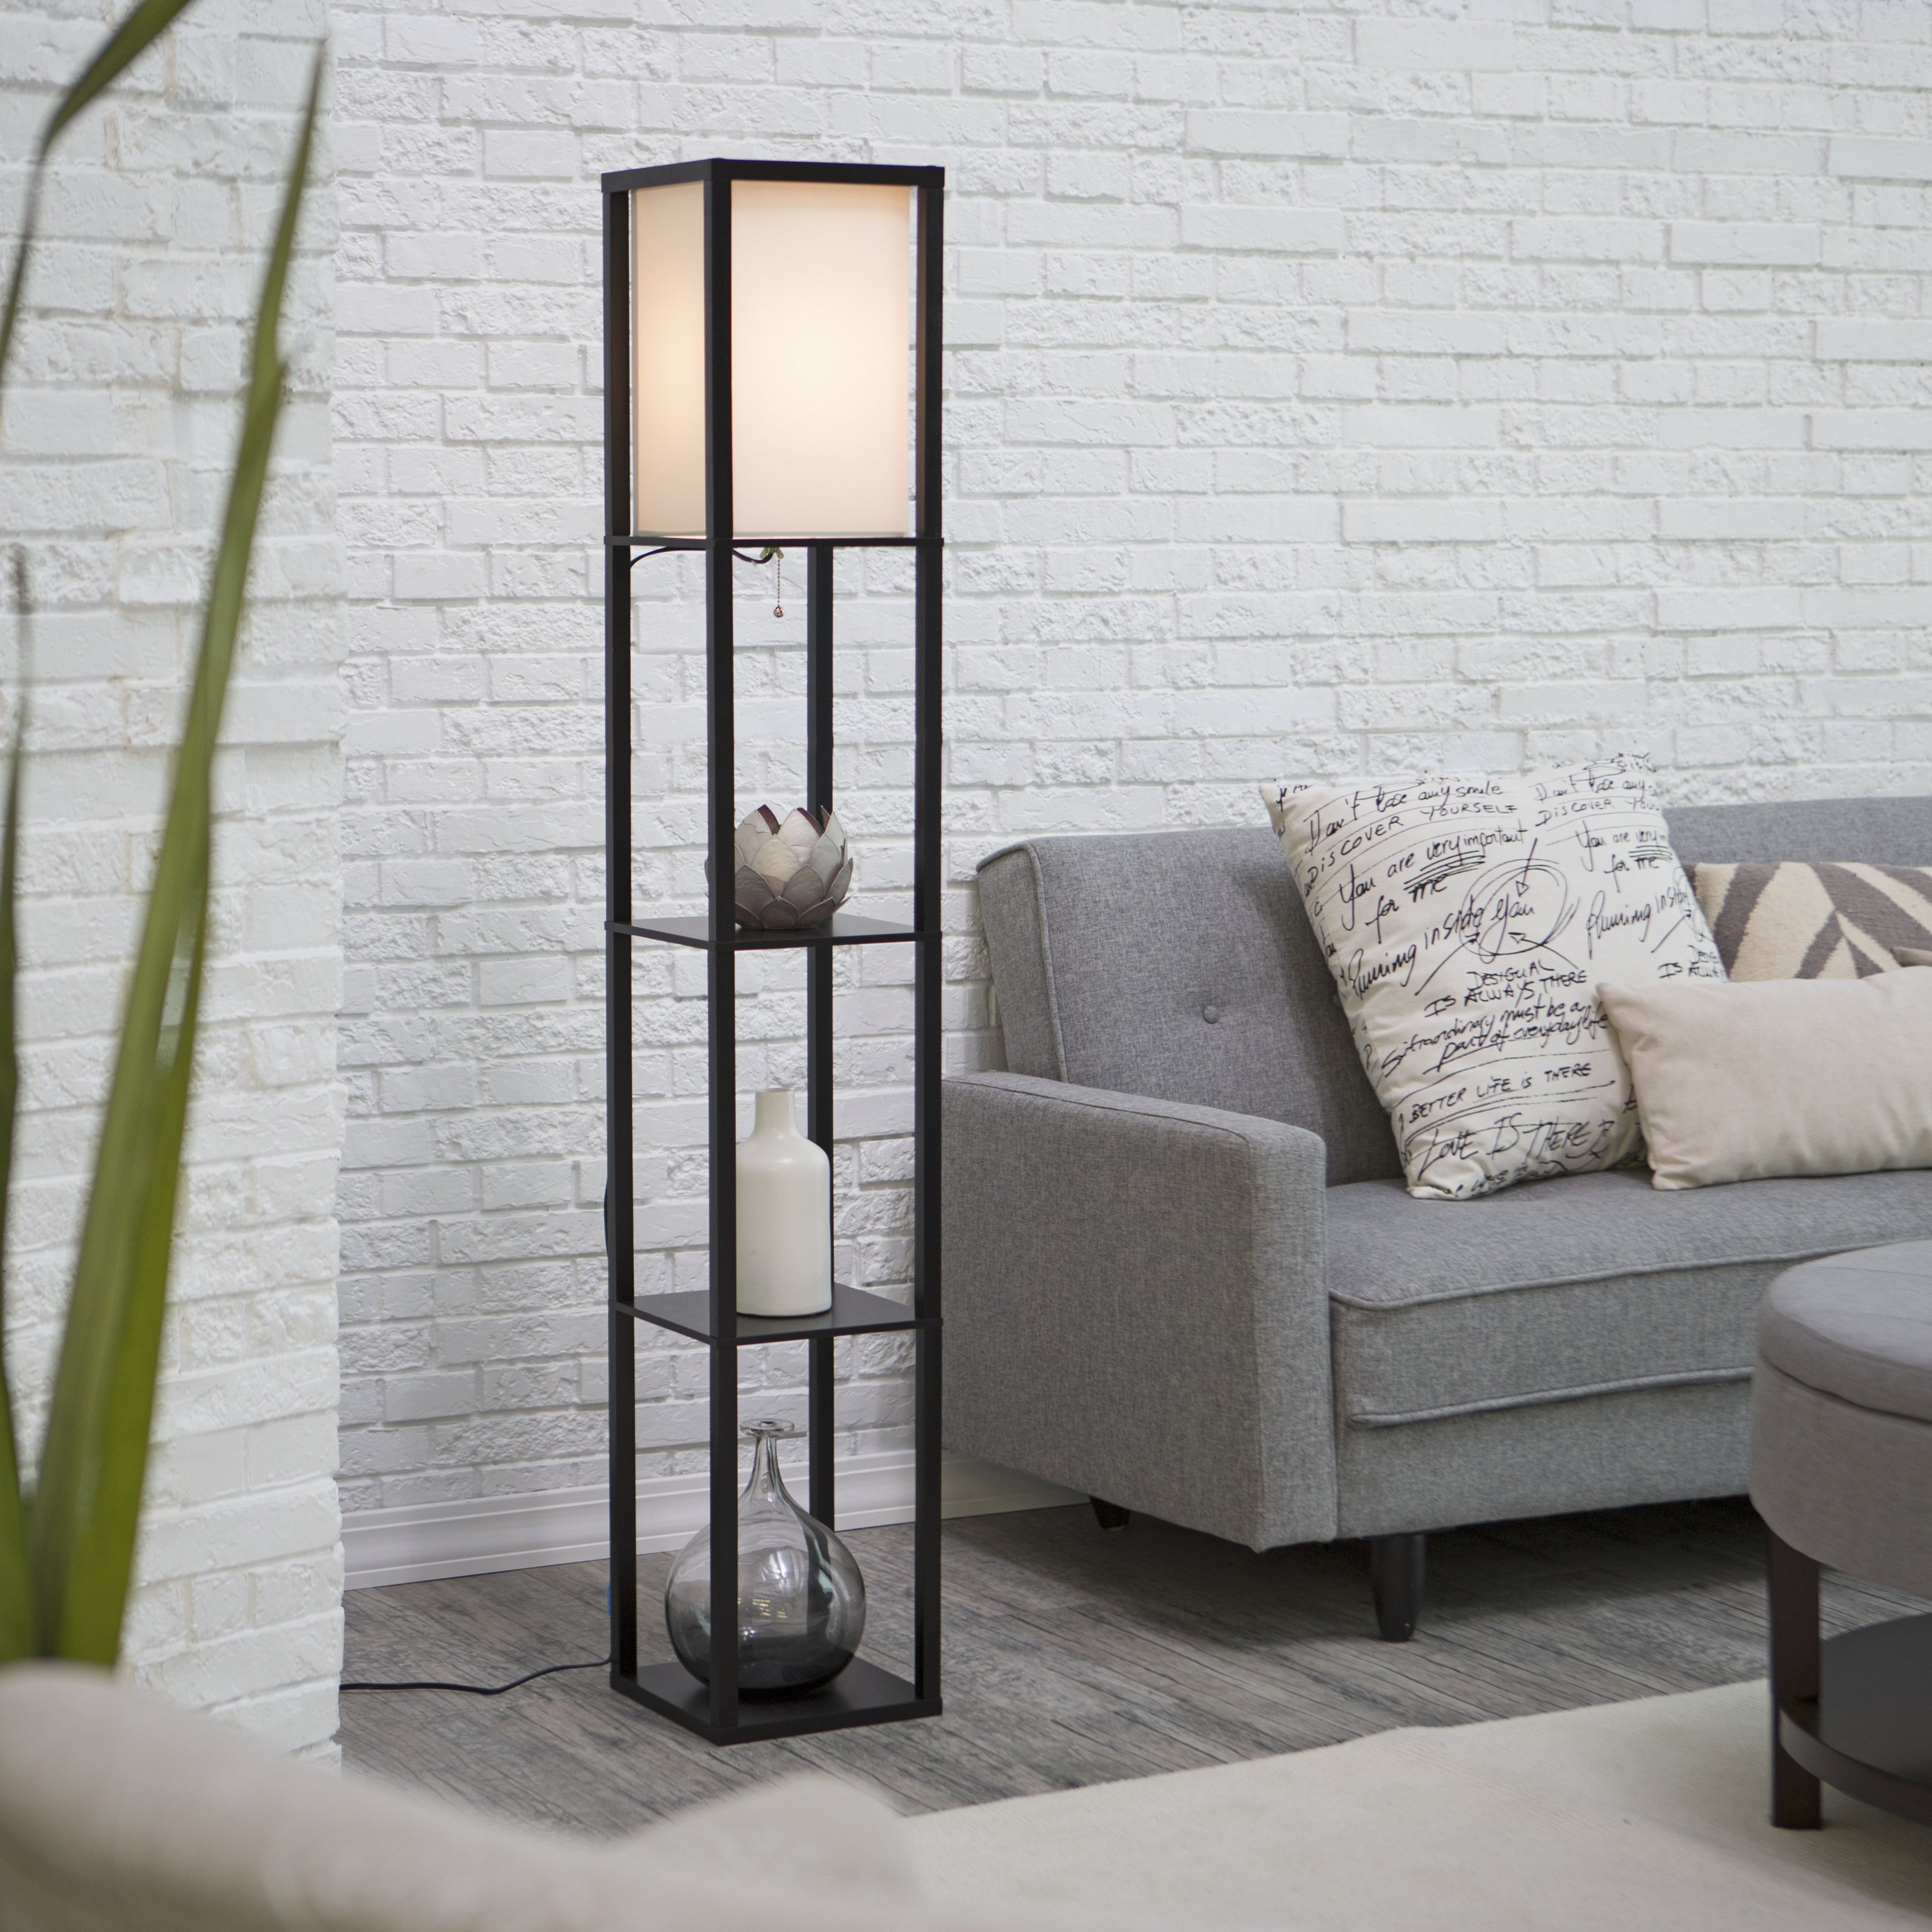 Adesso Wright Shelf Tall Floor Lamp, Black Finish by Generic